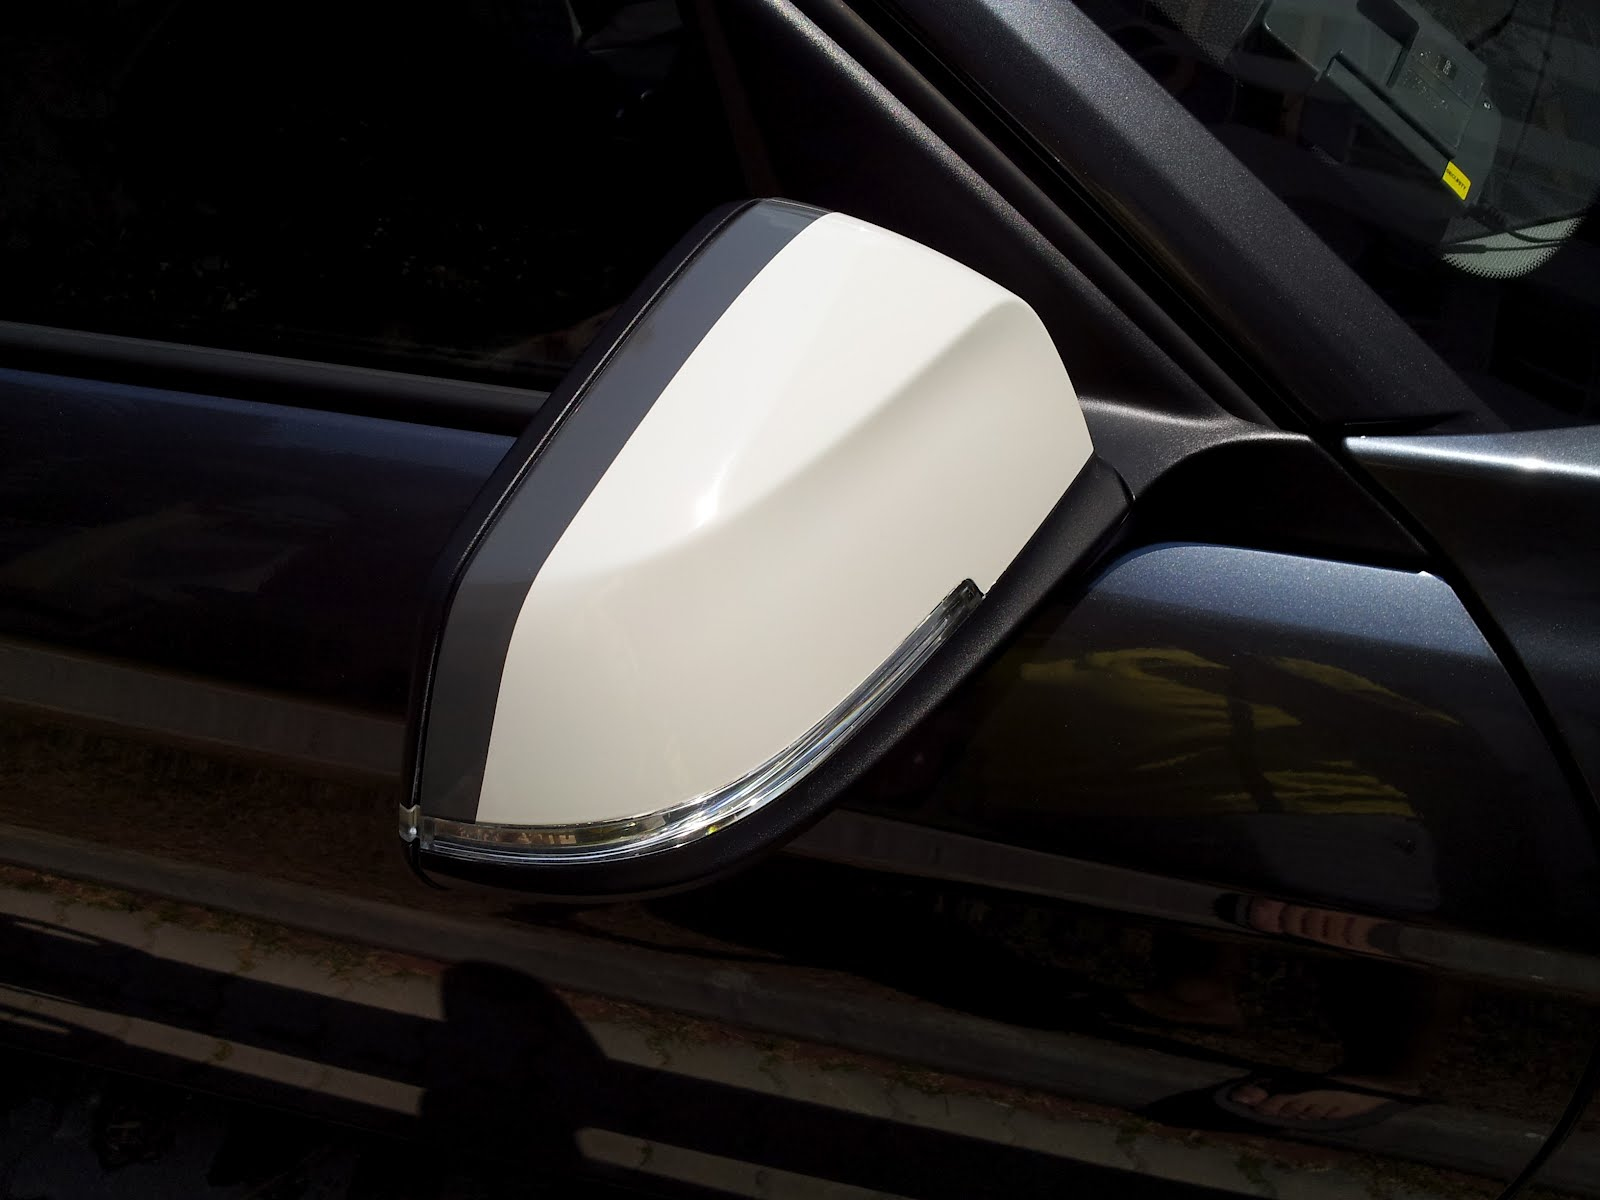 Car side mirror sticker design -  Above Side Mirror Cap Resprayed Gloss Pearl White With The Grey Decal Sticker Depicting The M Colours Of White Grey And Black